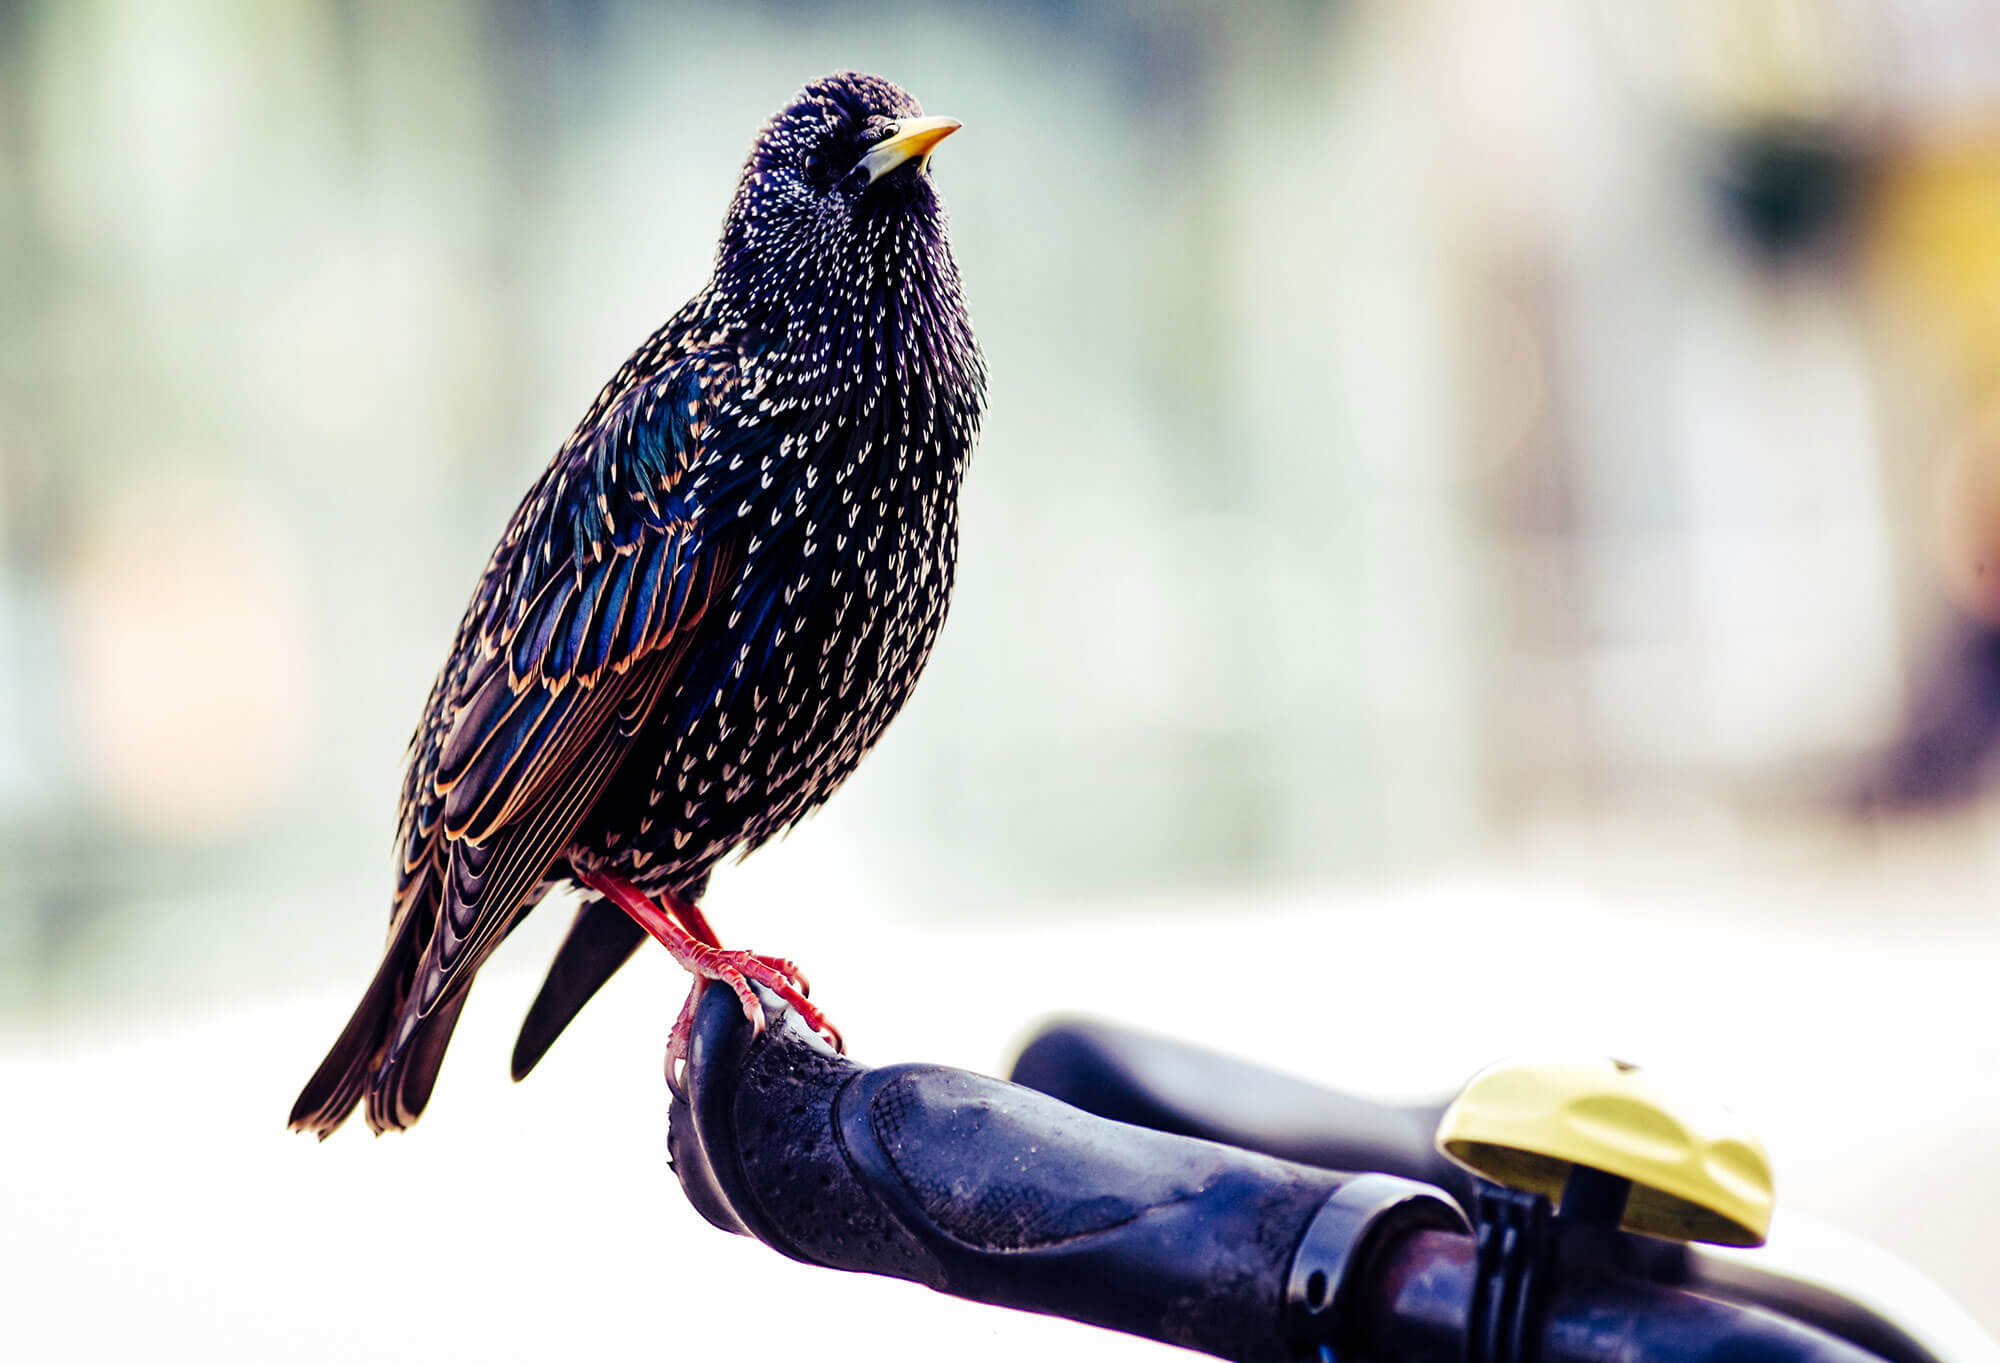 Close up of a Starling bird perched on the handlebars of a bicycle